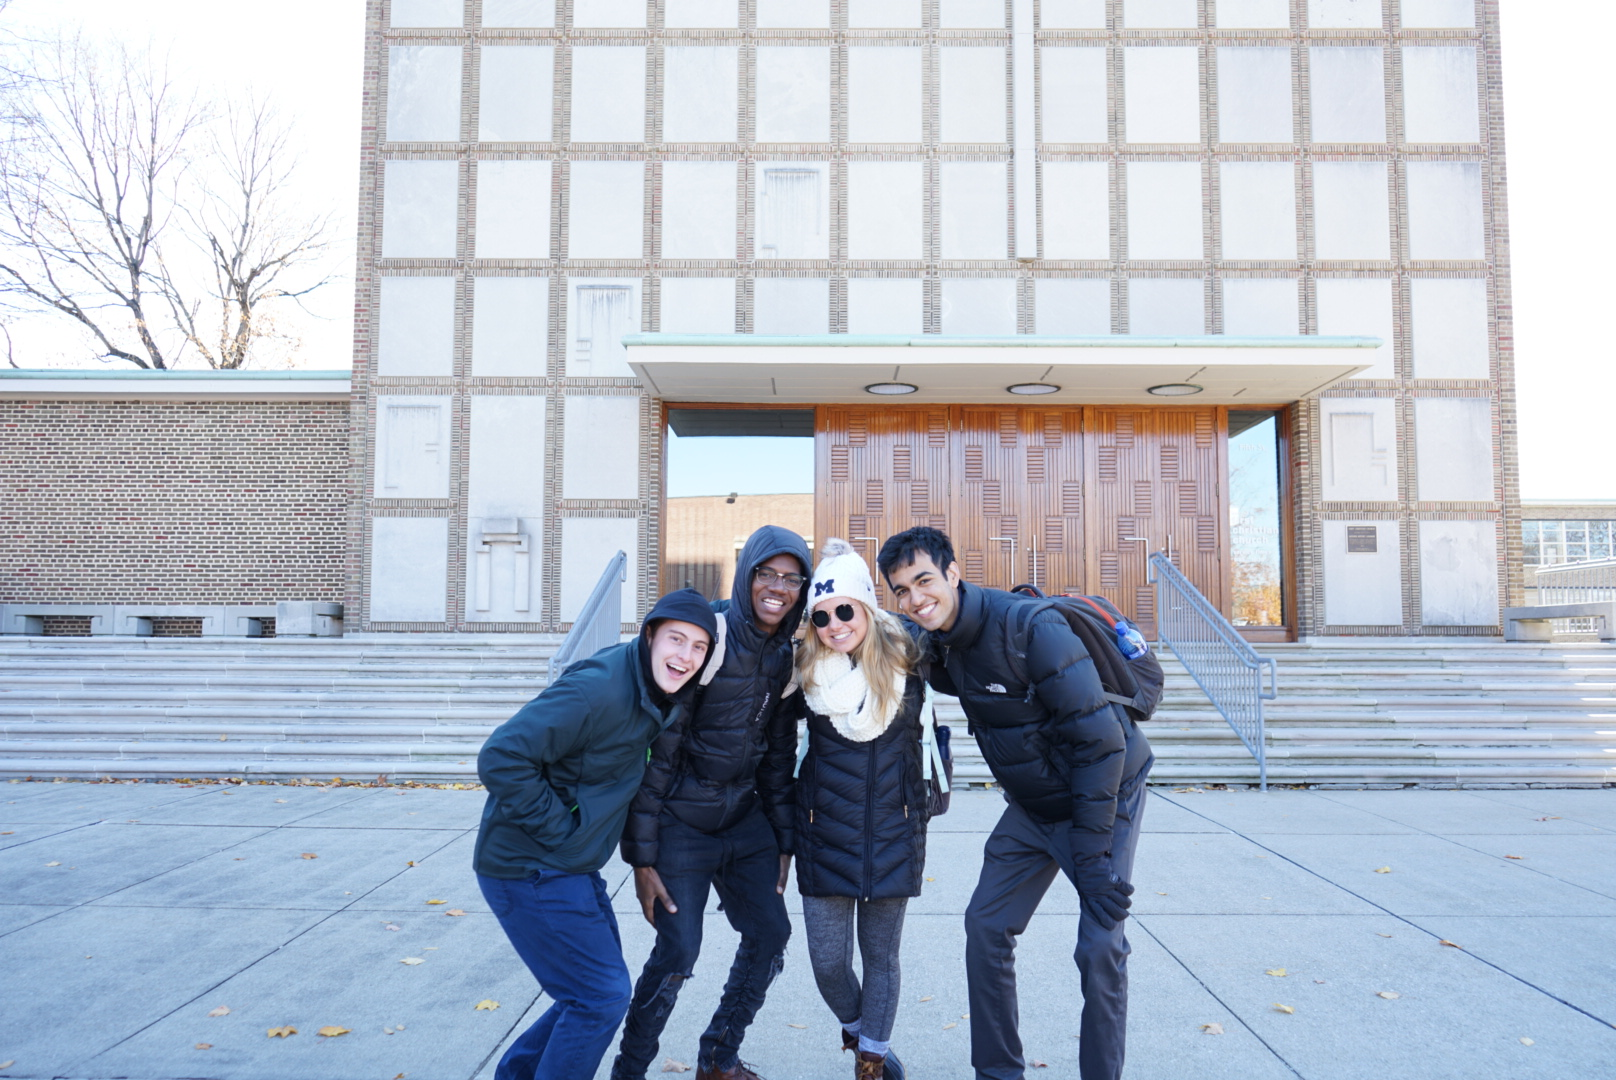 (Left to right): Henry Womack, Demo Ford, Lauren Conroy and Nikhil Kharkar traveled to the small town Columbus, Indiana to see buildings designed by famous architects. Image credit: Lauren Conroy